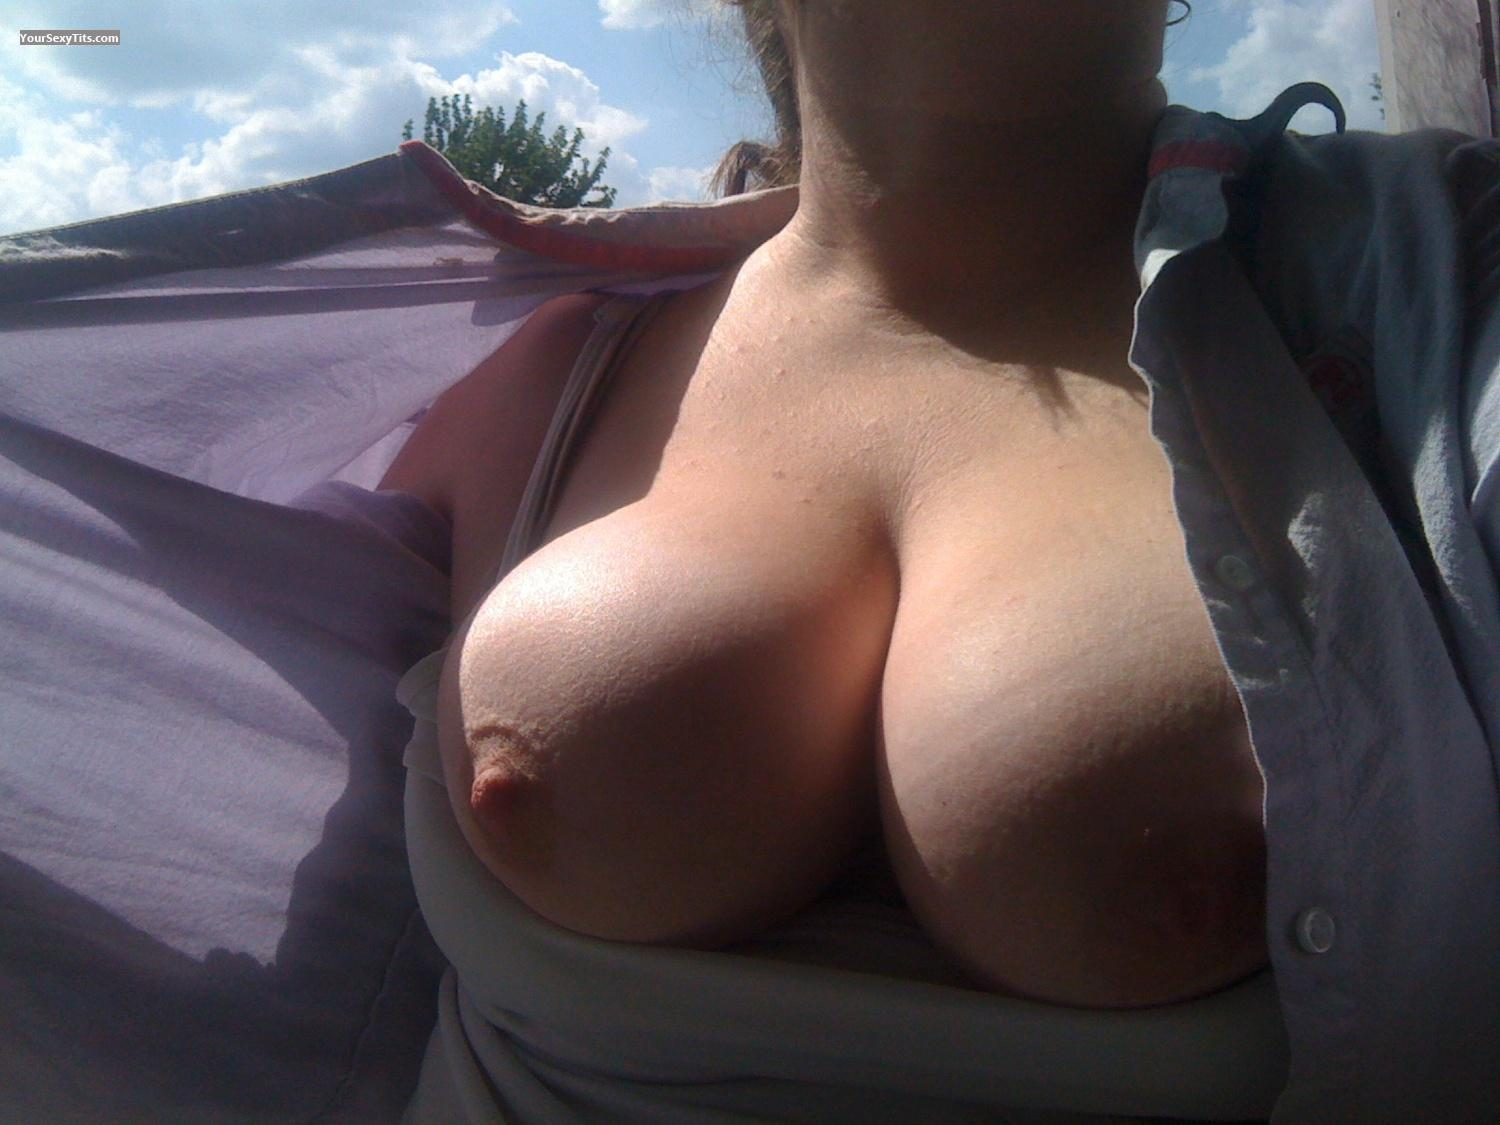 Tit Flash: Very Big Tits By IPhone - Lovemydd from United States